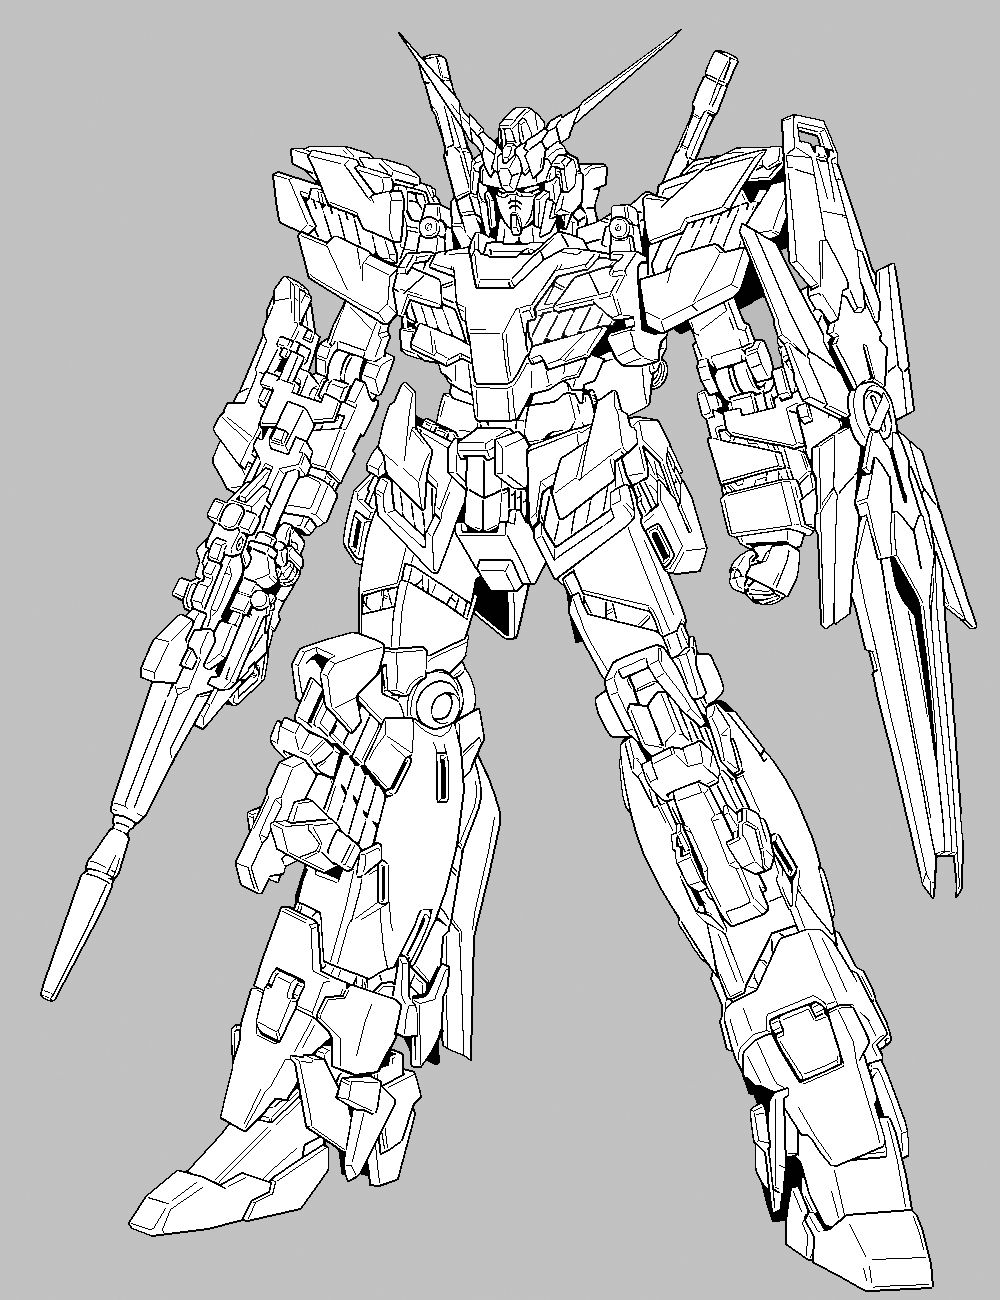 Rx 0 Unicorn Gundam D Mode Gundam Avengers Coloring Pages Coloring Pages